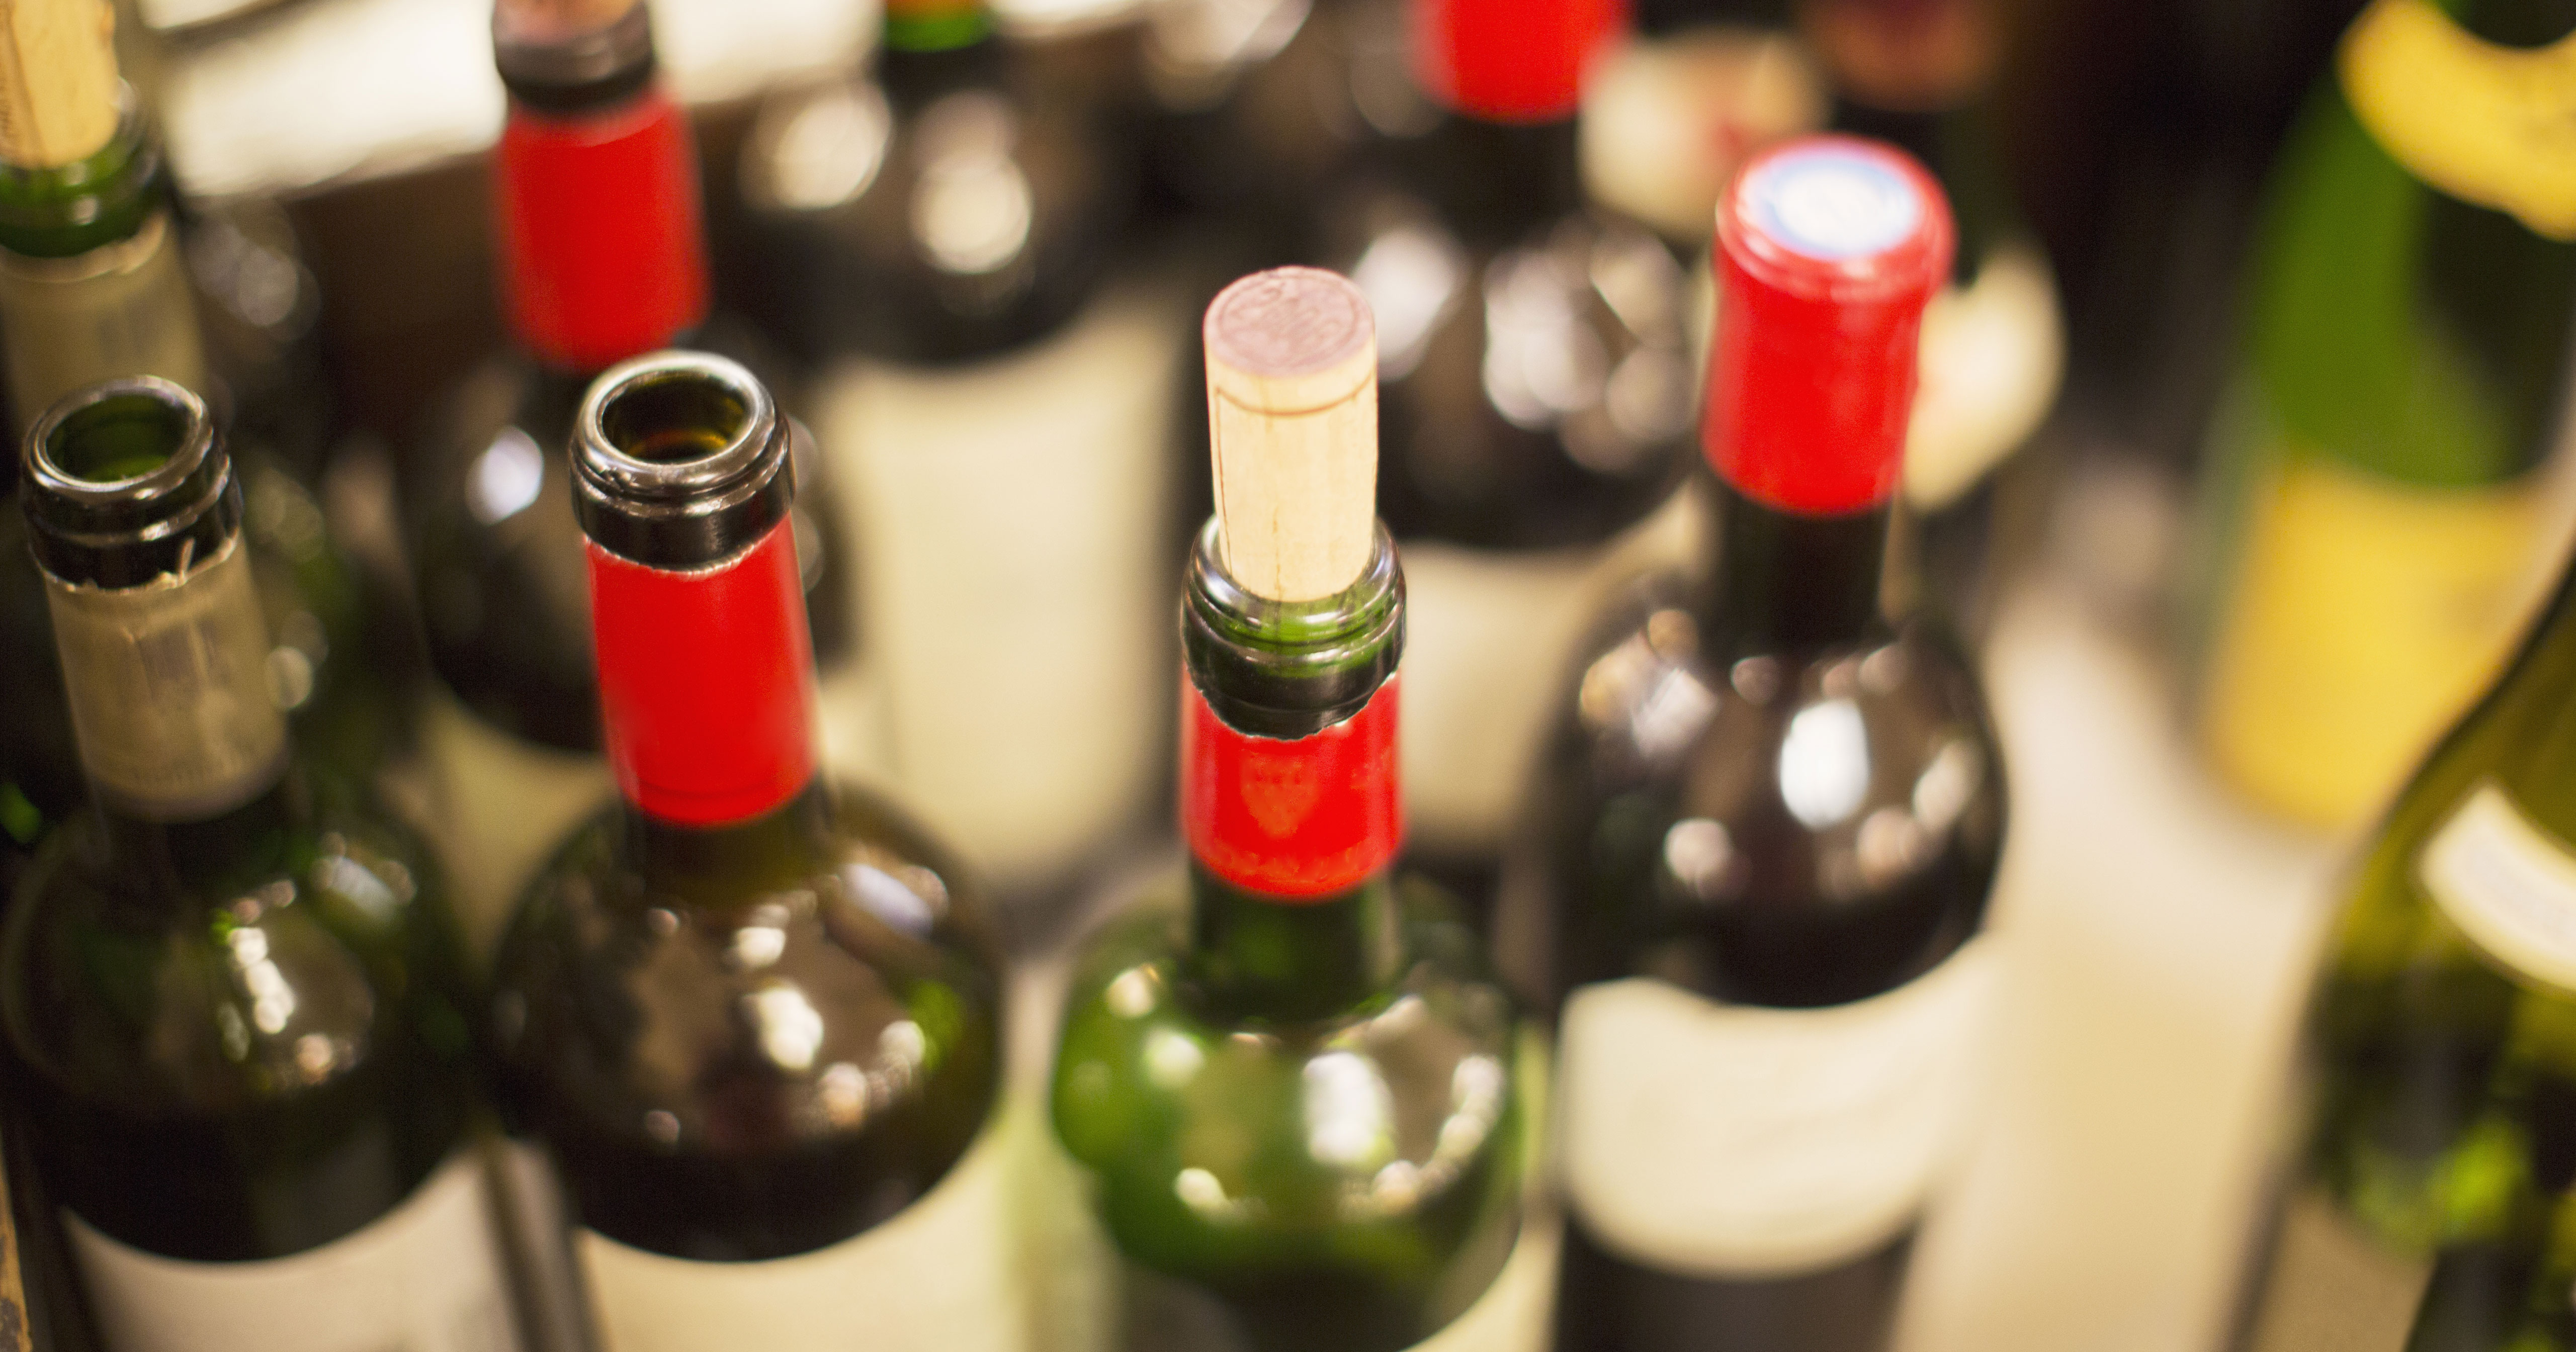 Here's How To Save Spoiled Wine In Less Than 30 Seconds